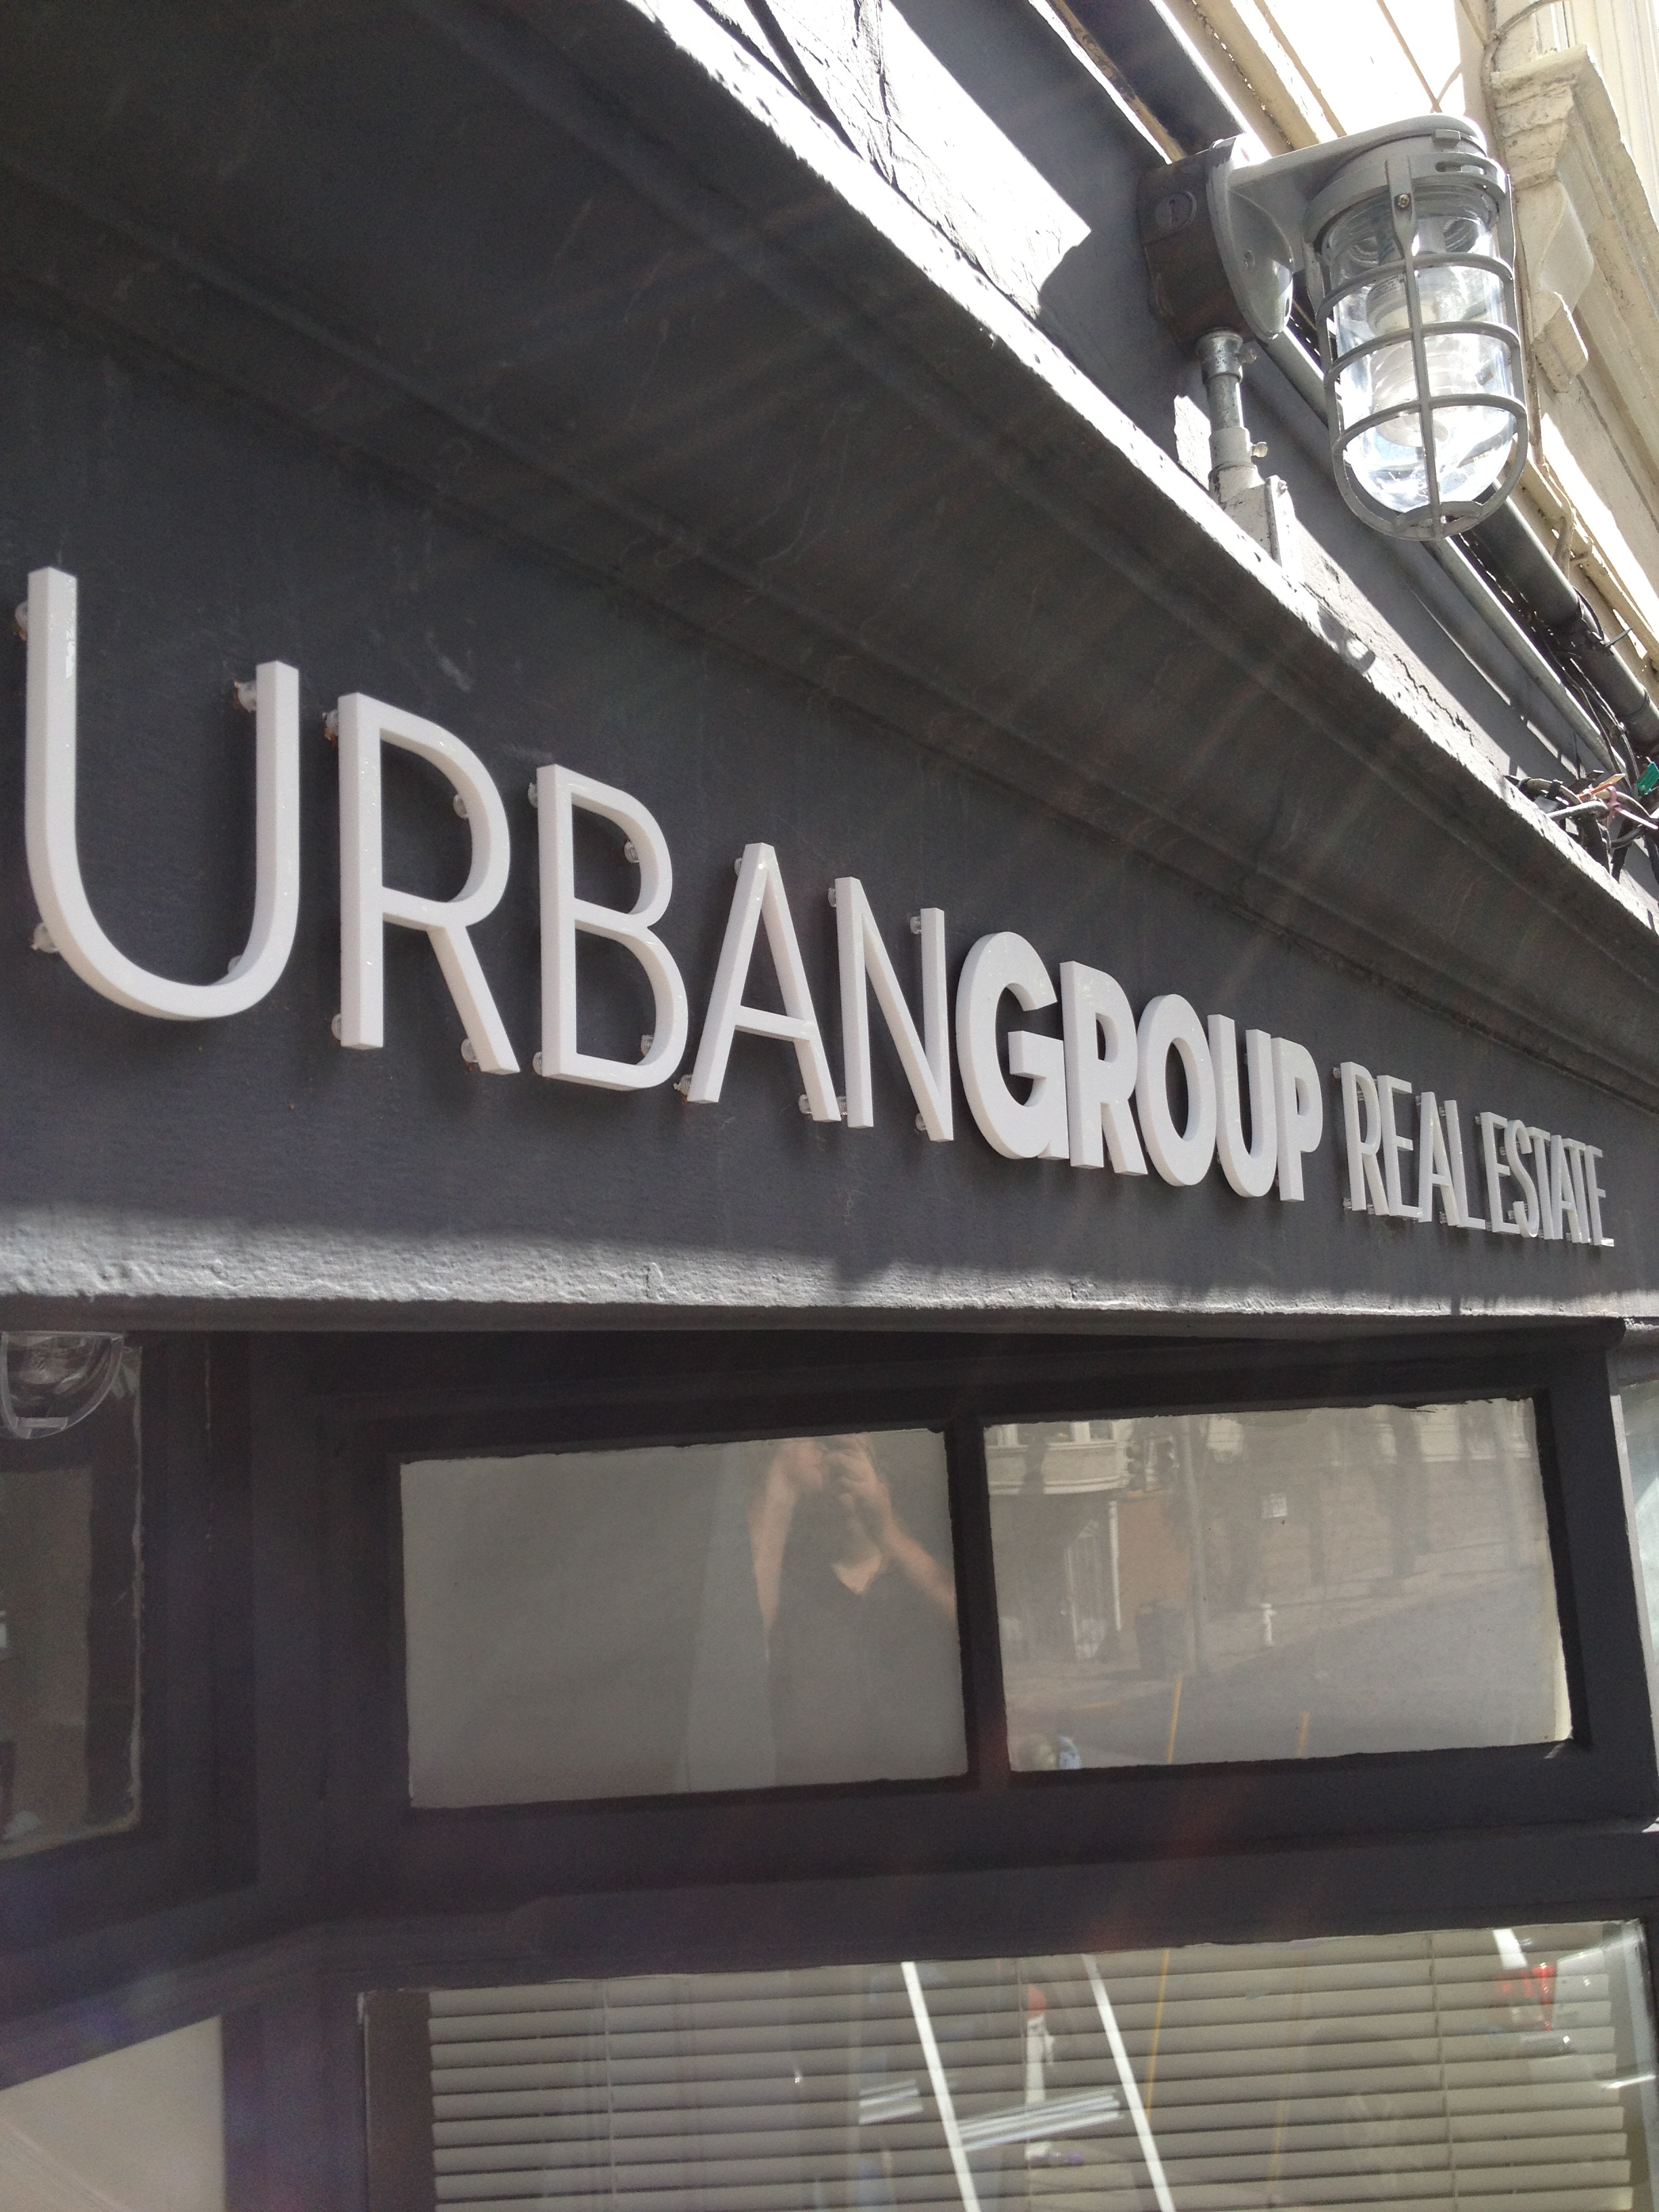 Urban Group Real Estate signs